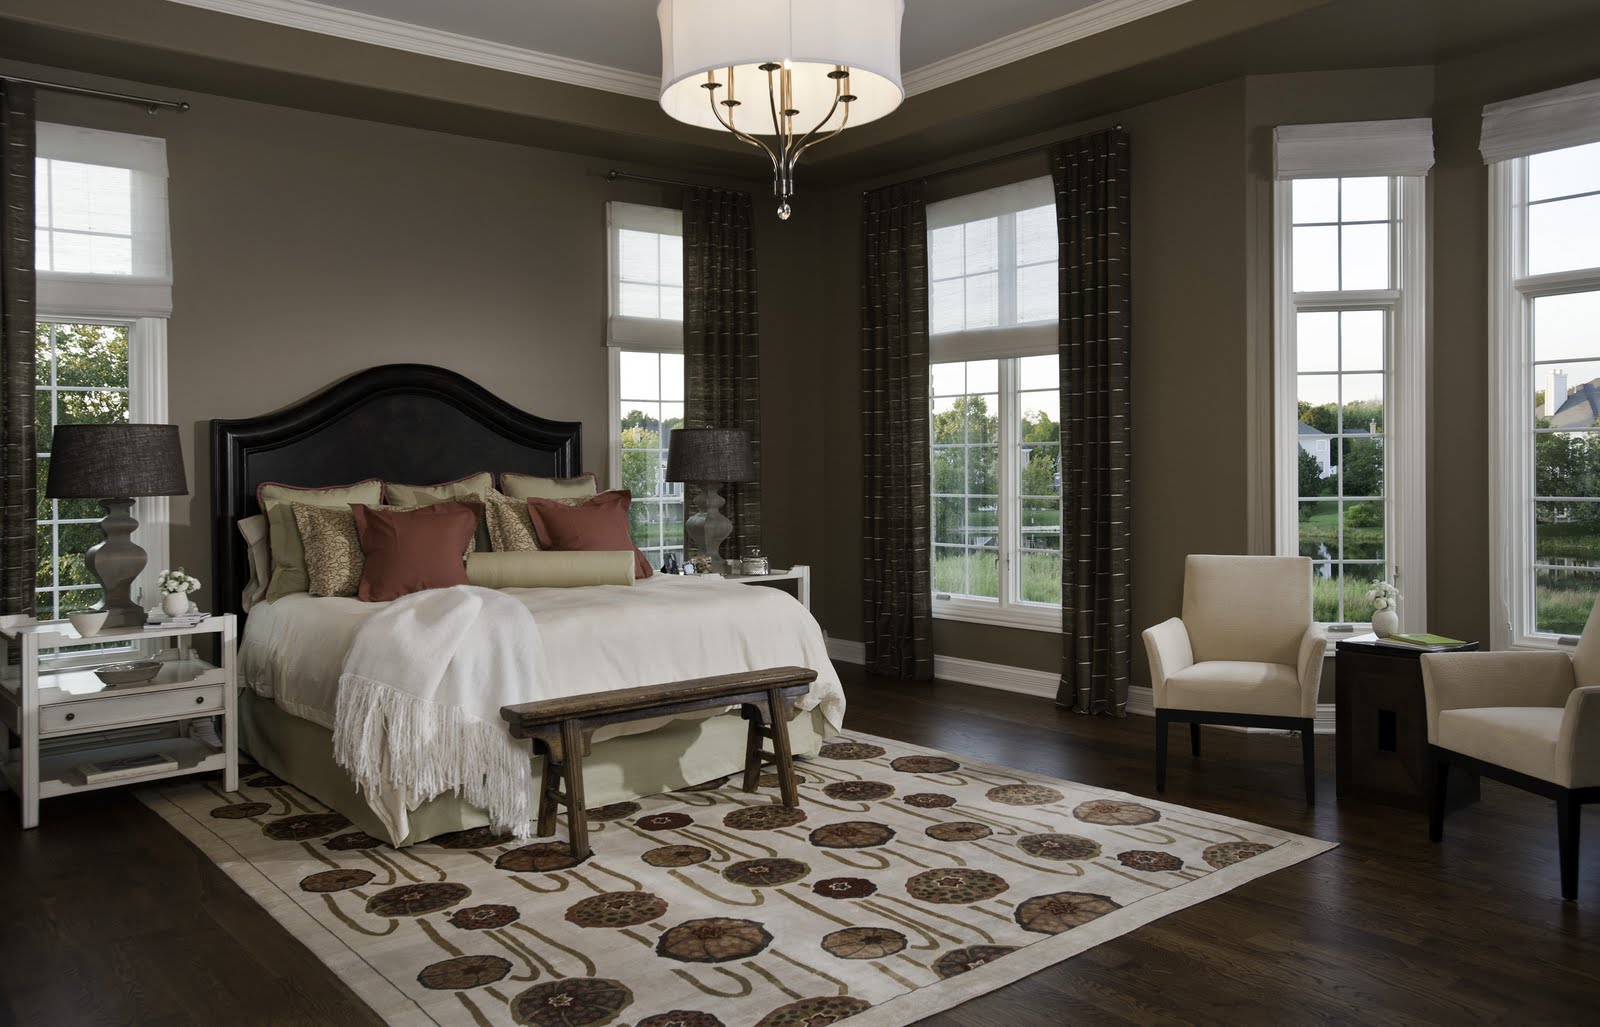 Best window treatment ideas and designs for 2014 qnud - Bedroom window treatments ideas ...